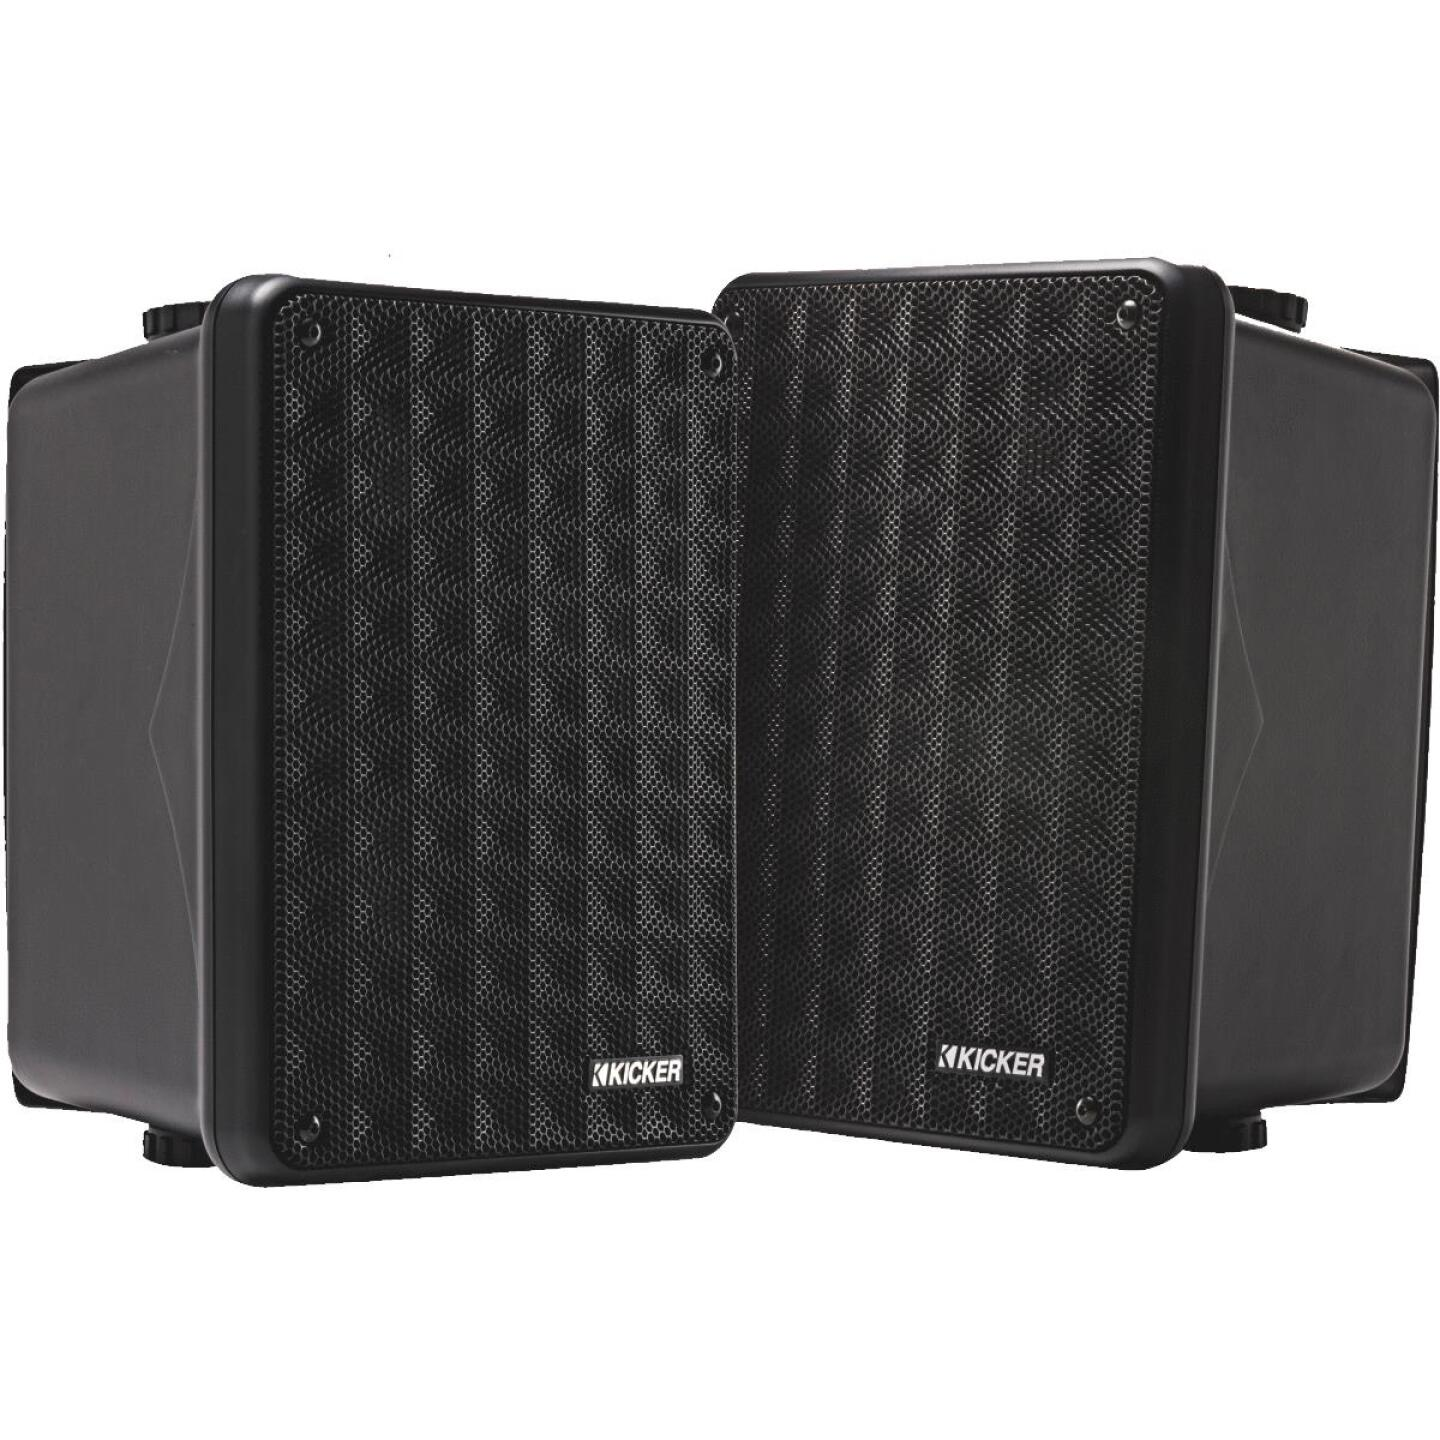 Kicker KB6000 2-Way Black Weatherproof Outdoor Full Range Speaker (2-Pack) Image 1